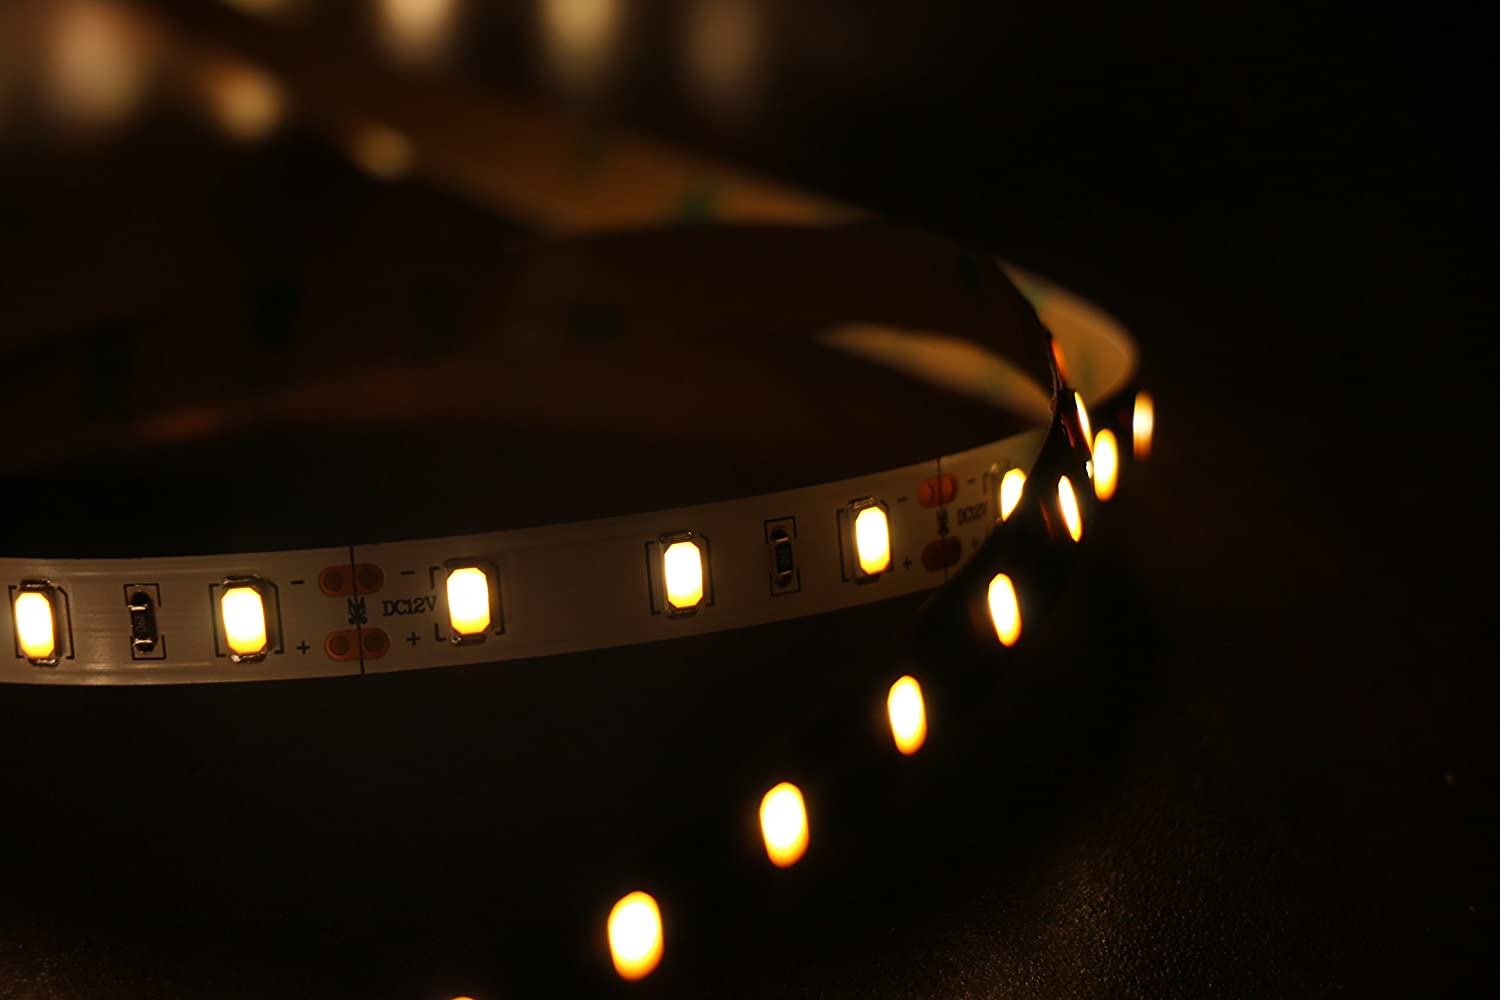 Marswell Cri 90 Led Strip Lights Warm White Smd5630 Non 3v 3w Amber Power 55lm Rapid Online Waterproof Home Kitchen